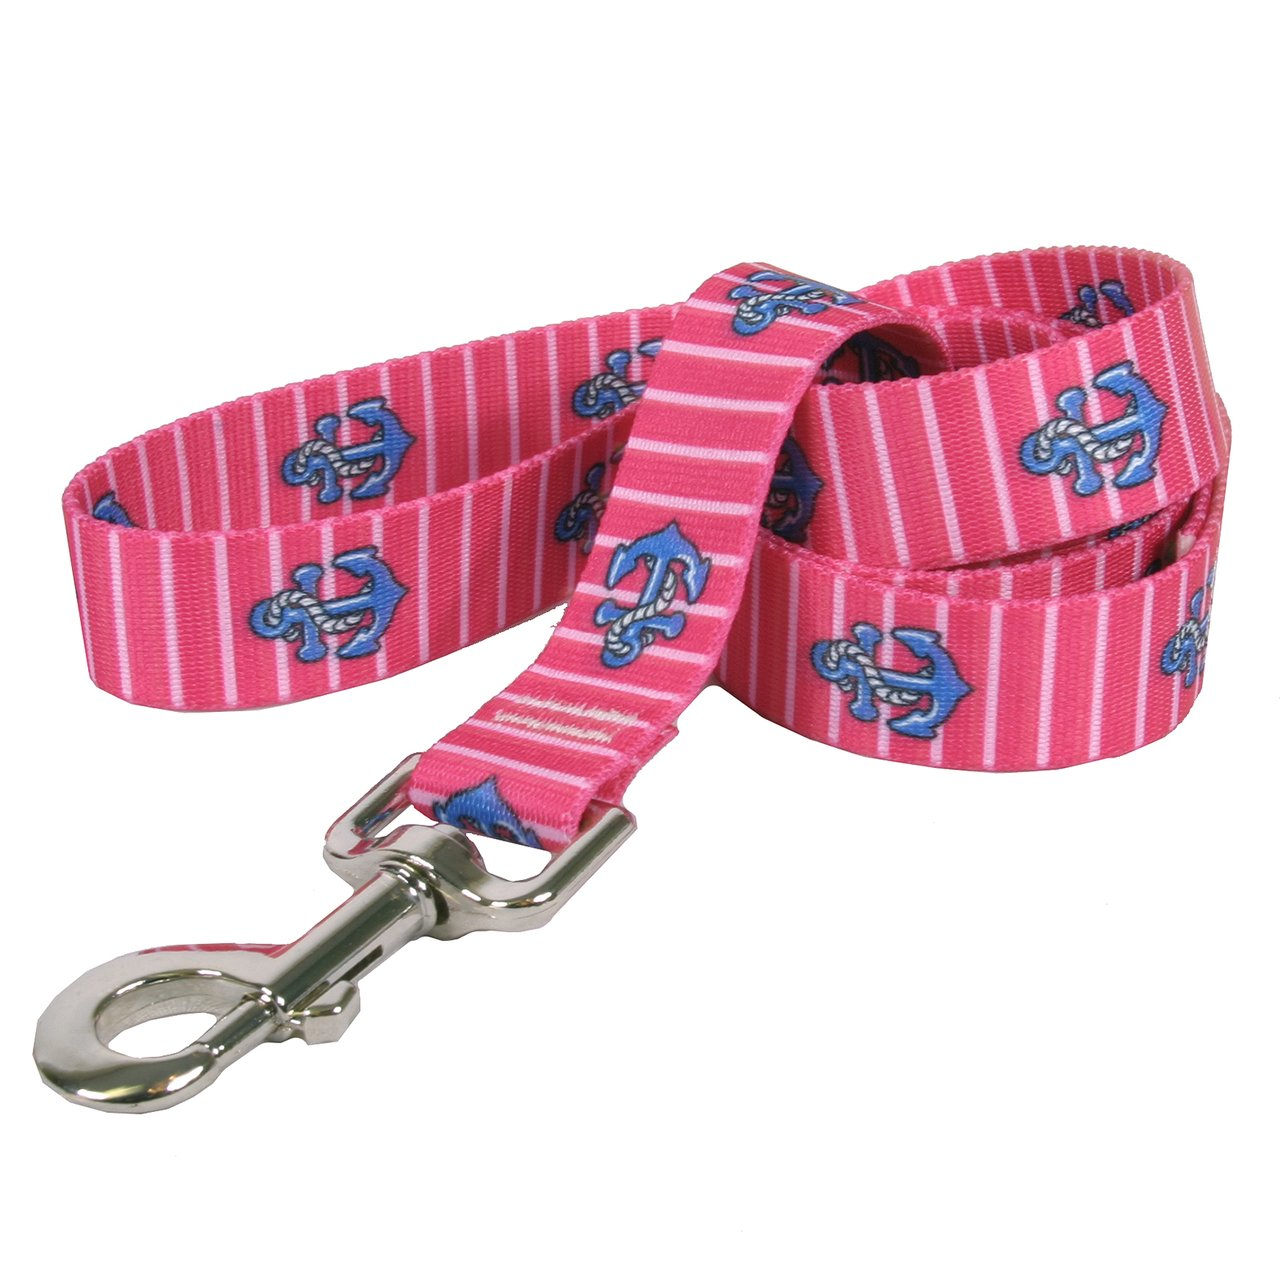 Yellow Dog Design Anchors On Pink Stripes Dog Leash 3/4'' Wide and 5' (60'') Long, Small/Medium